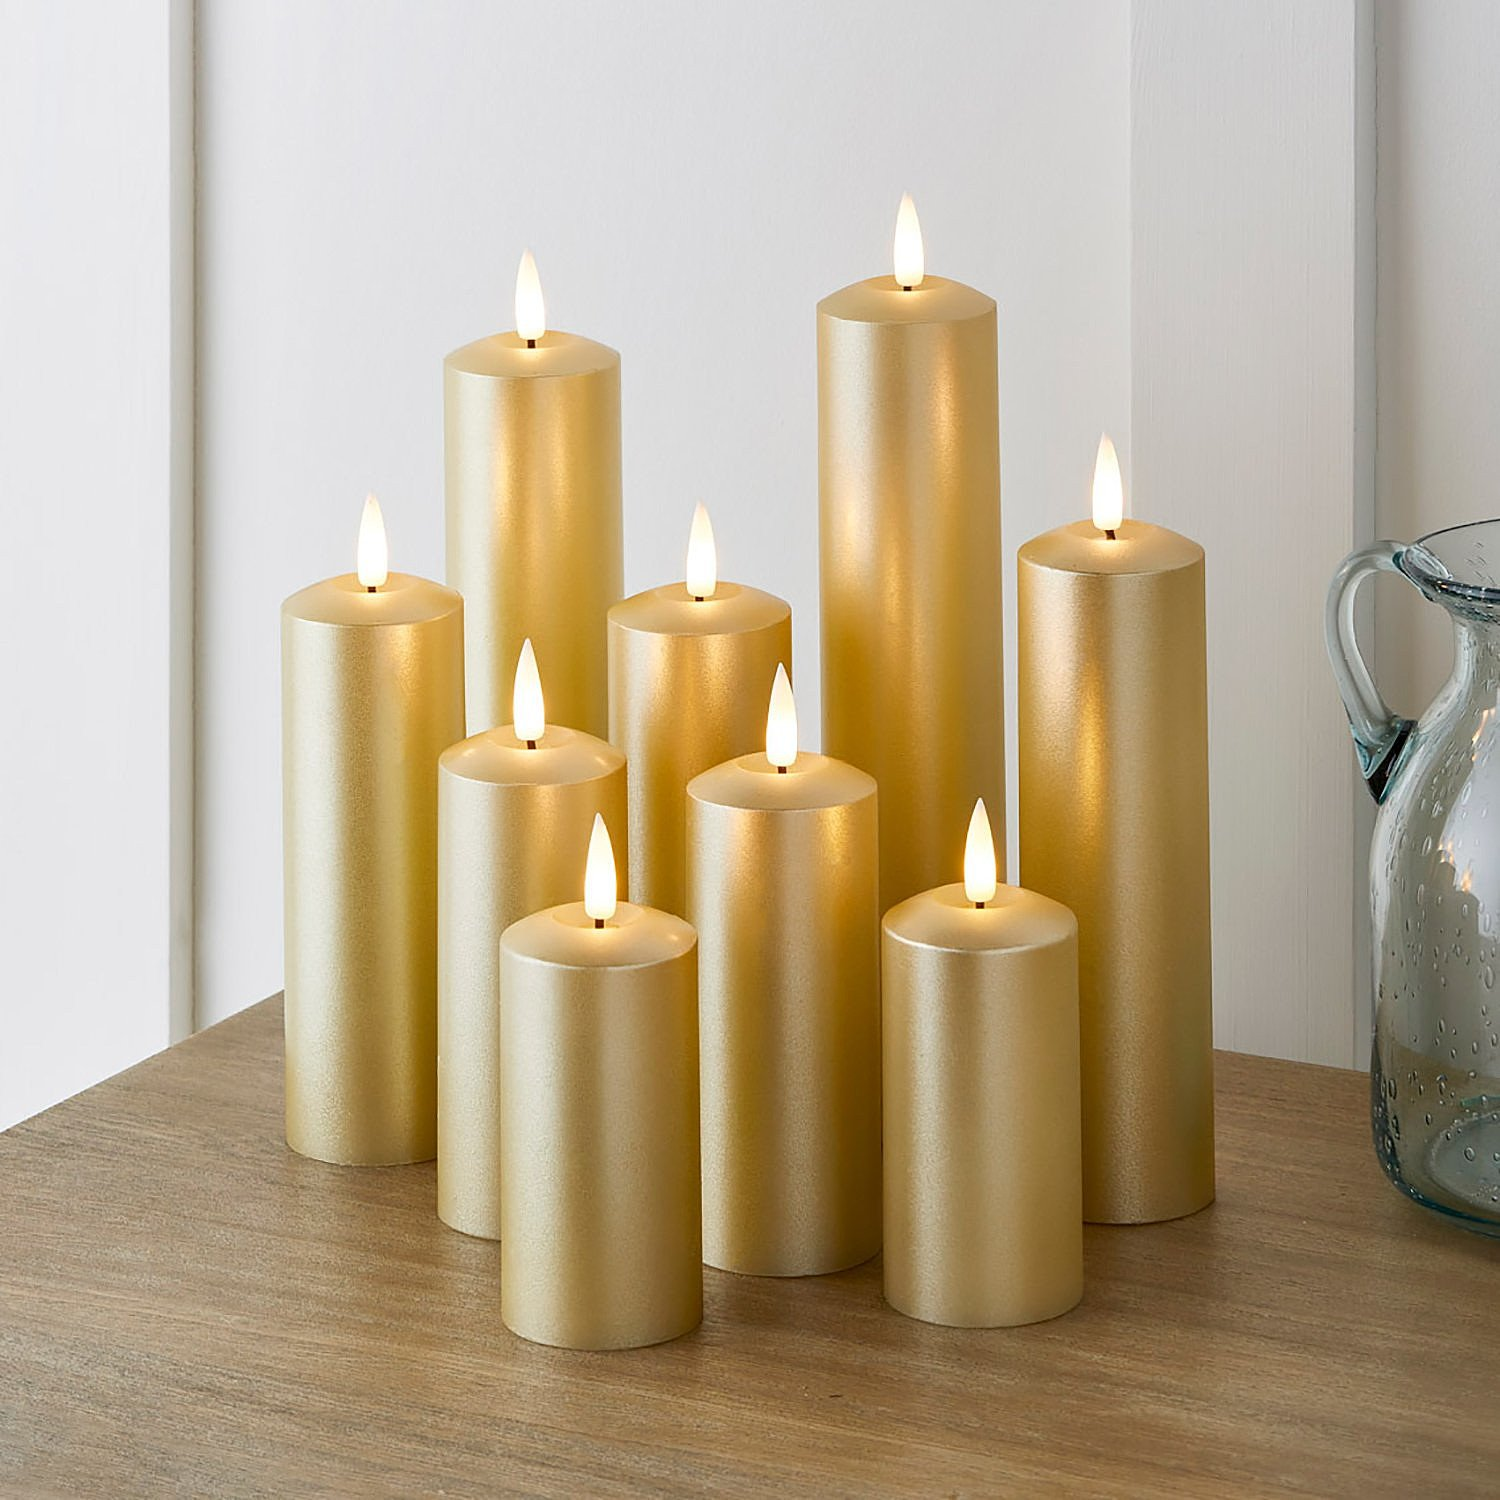 SALE - 9 TruGlow® Gold LED Slim Pillar Candles With Remote Control!